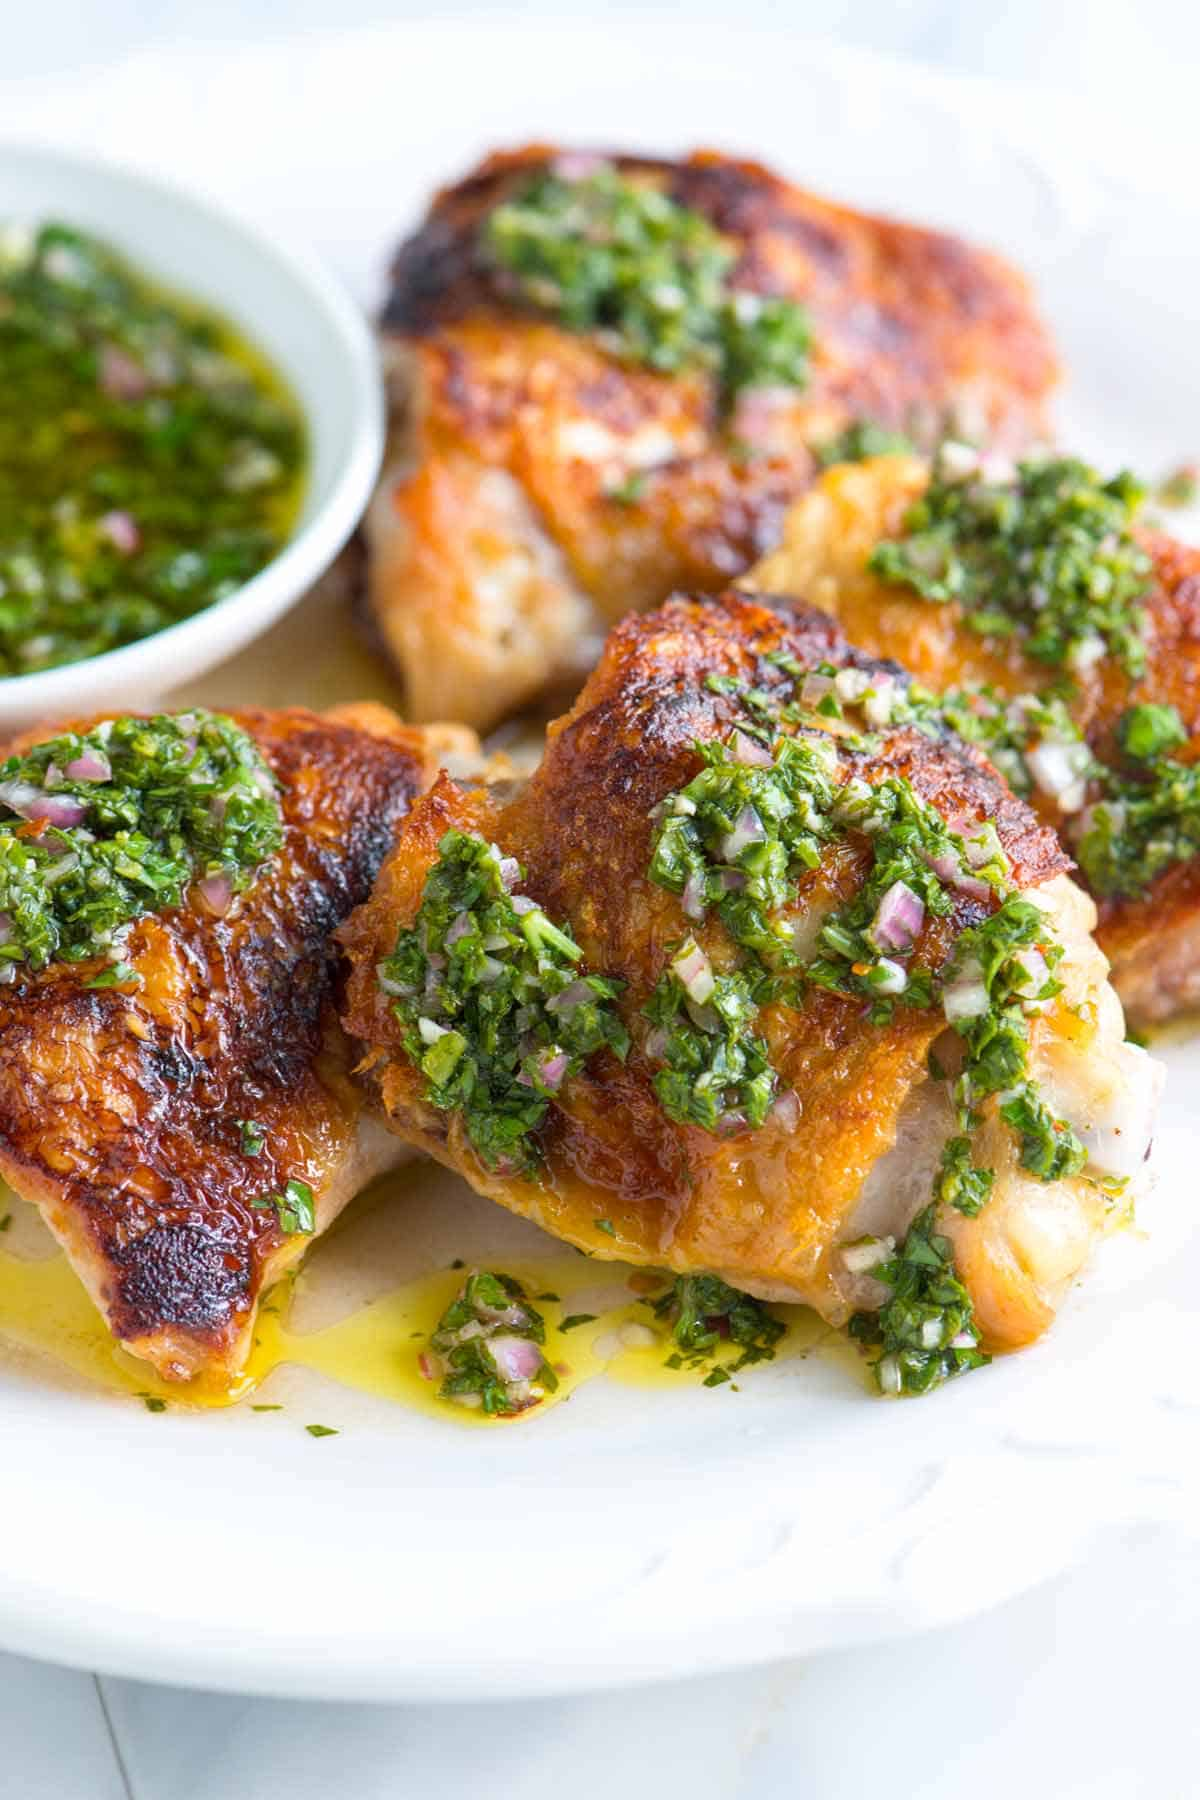 How to Make Chicken with Chimichurri Sauce